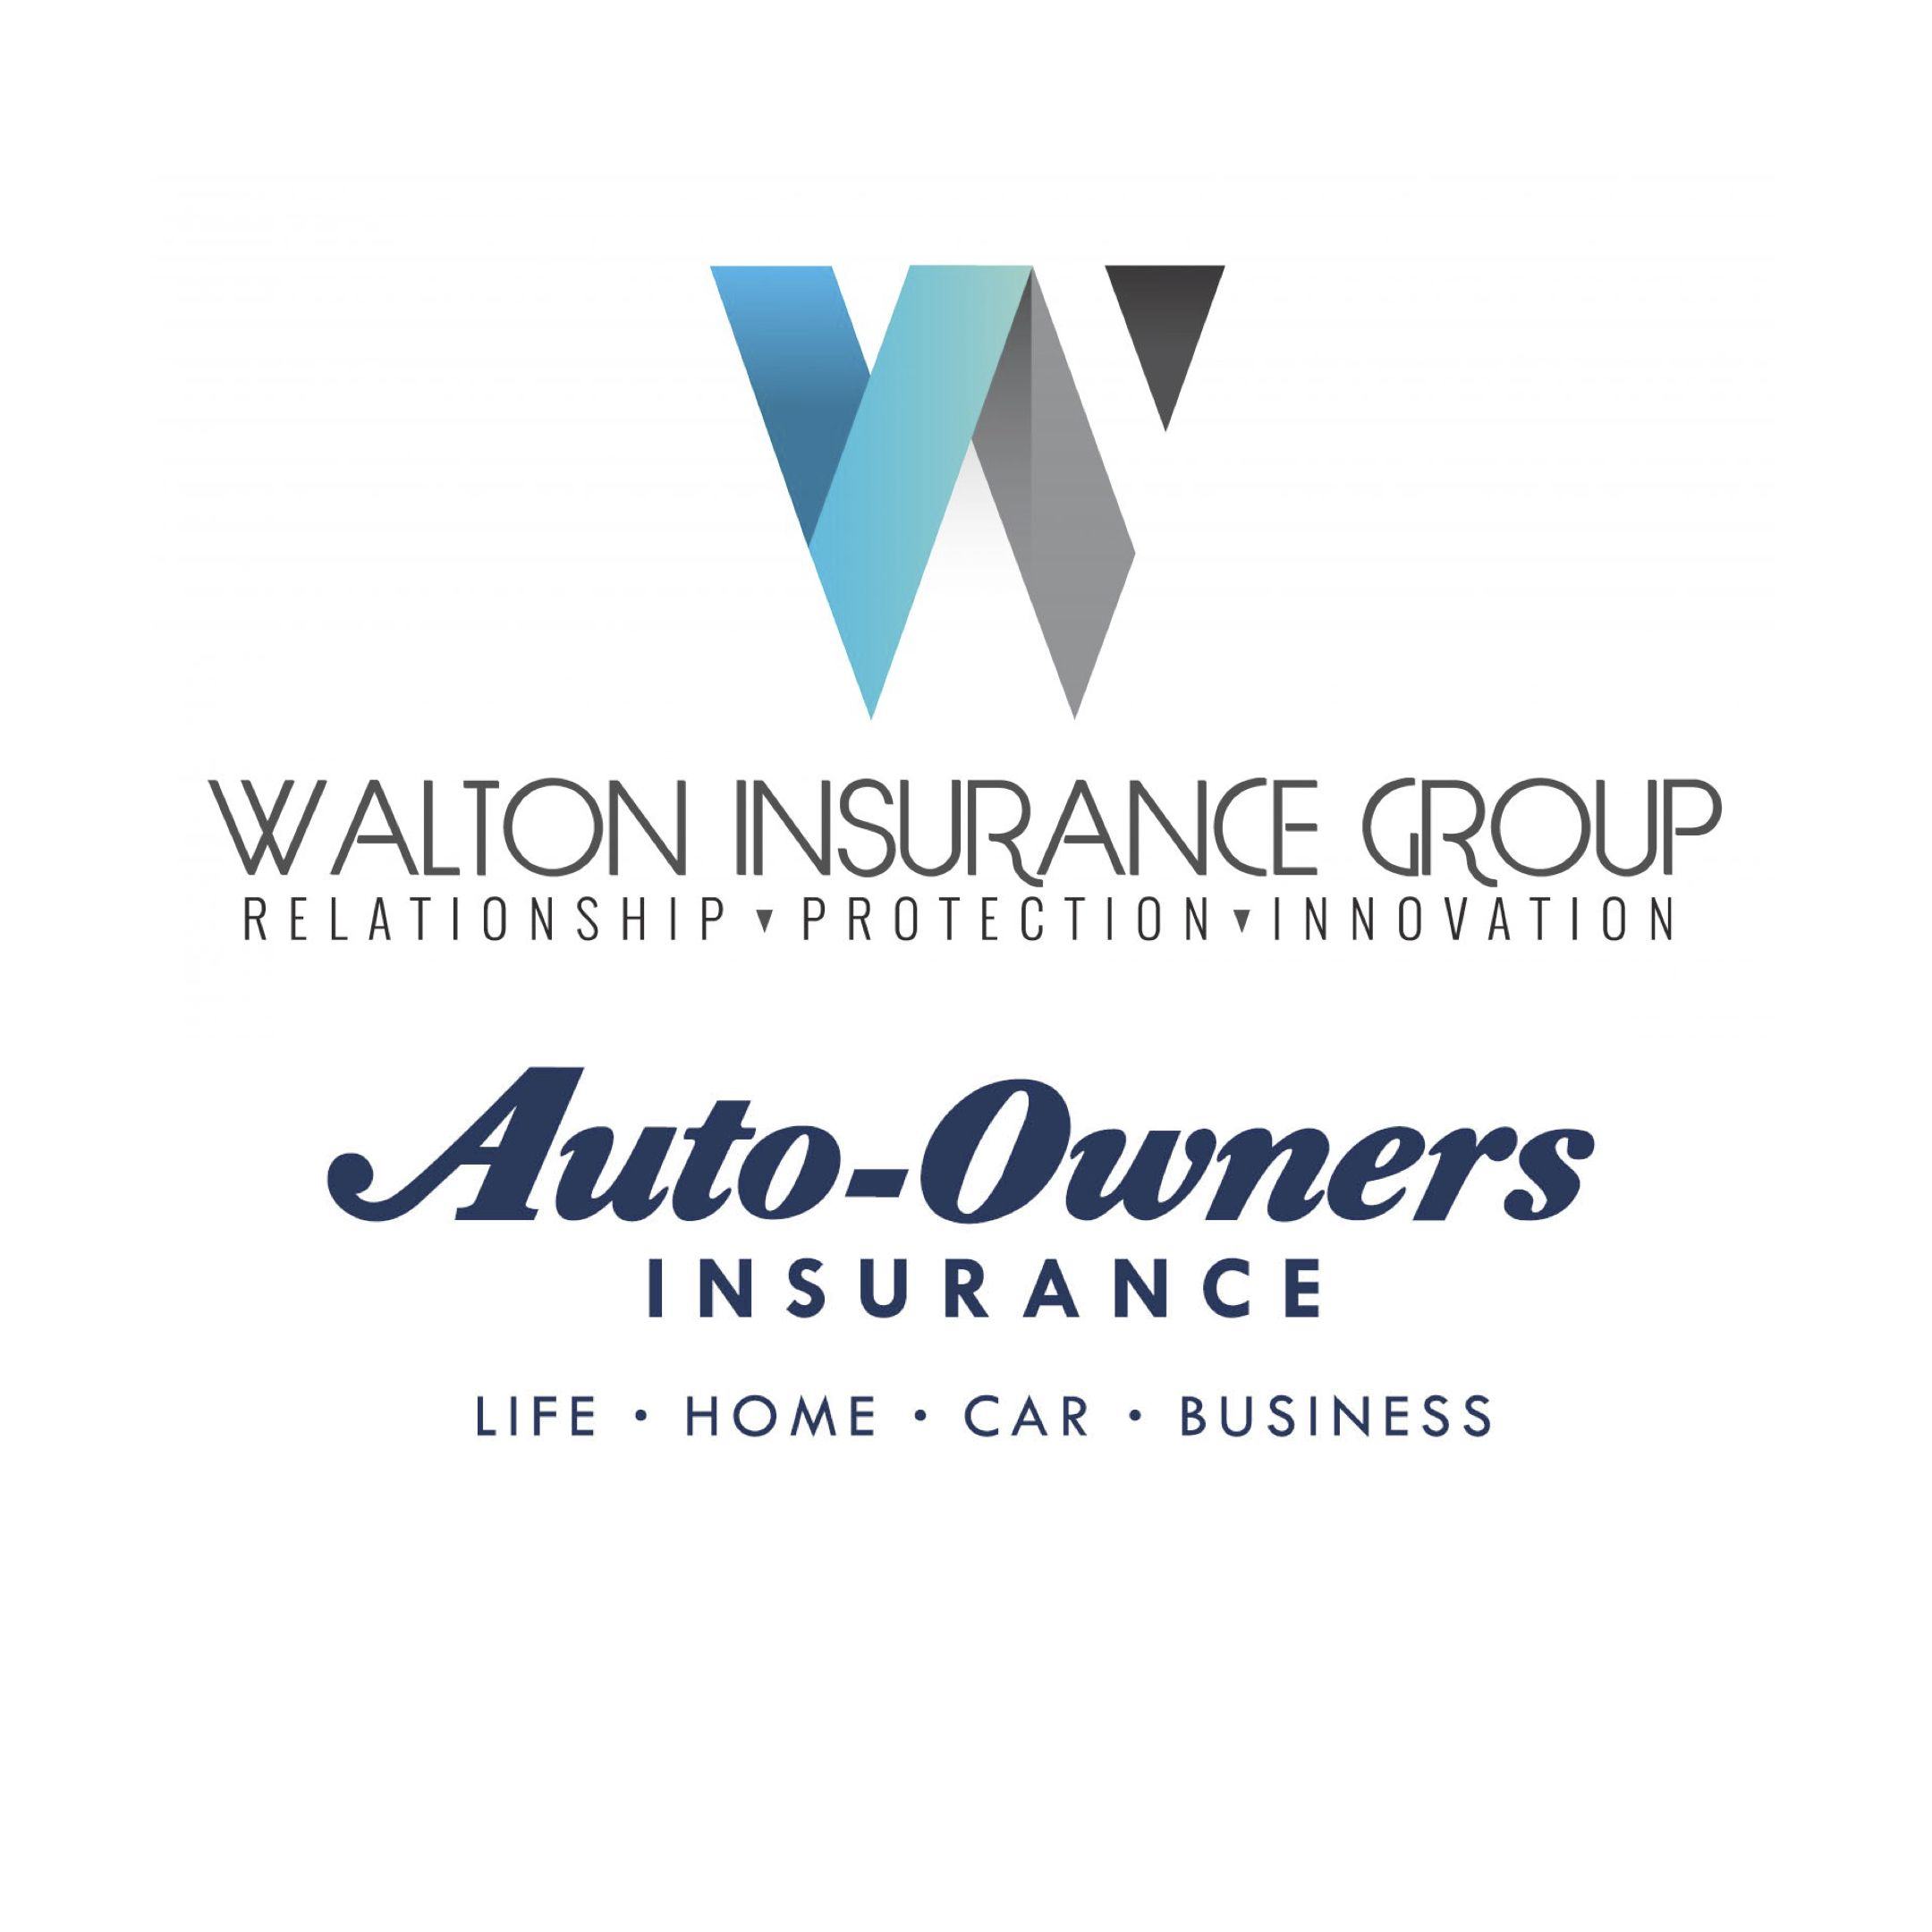 Together with AutoOwners Insurance, we are proud to be